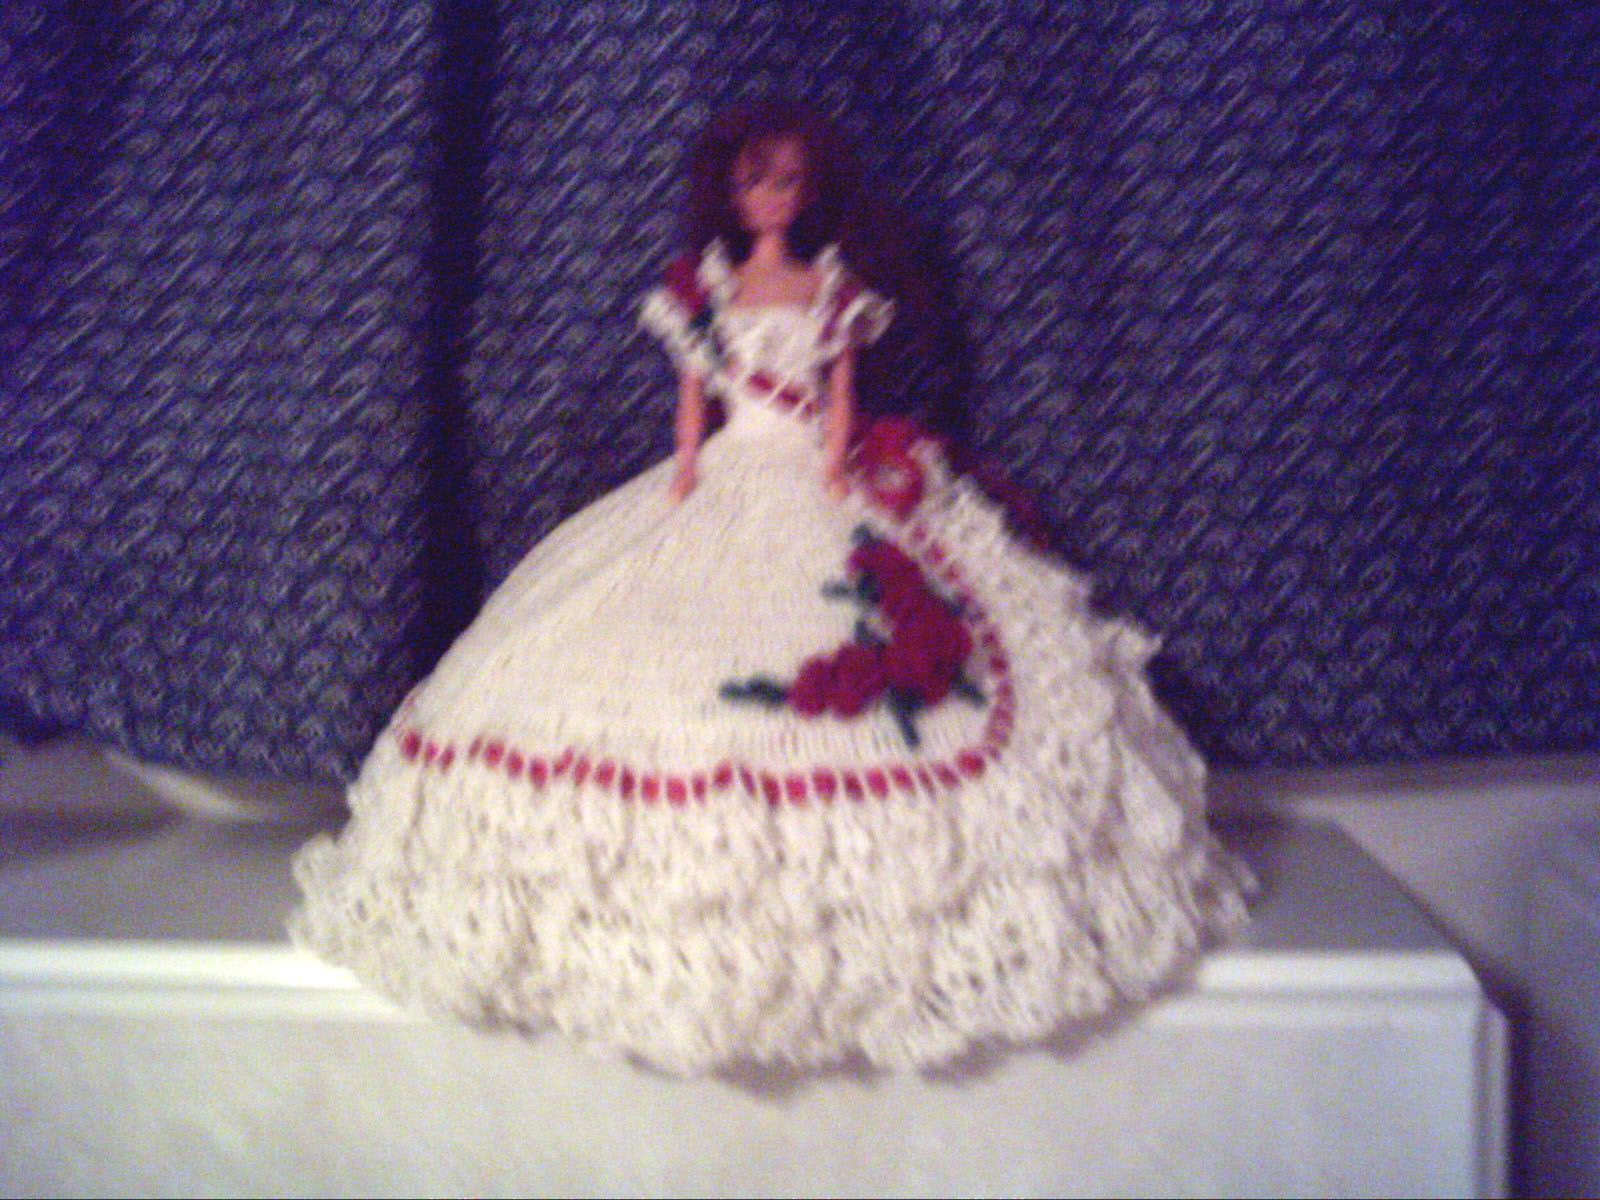 Barbie crochet ball gown patterns free bing images clever barbie crochet ball gown patterns free bing images bankloansurffo Choice Image